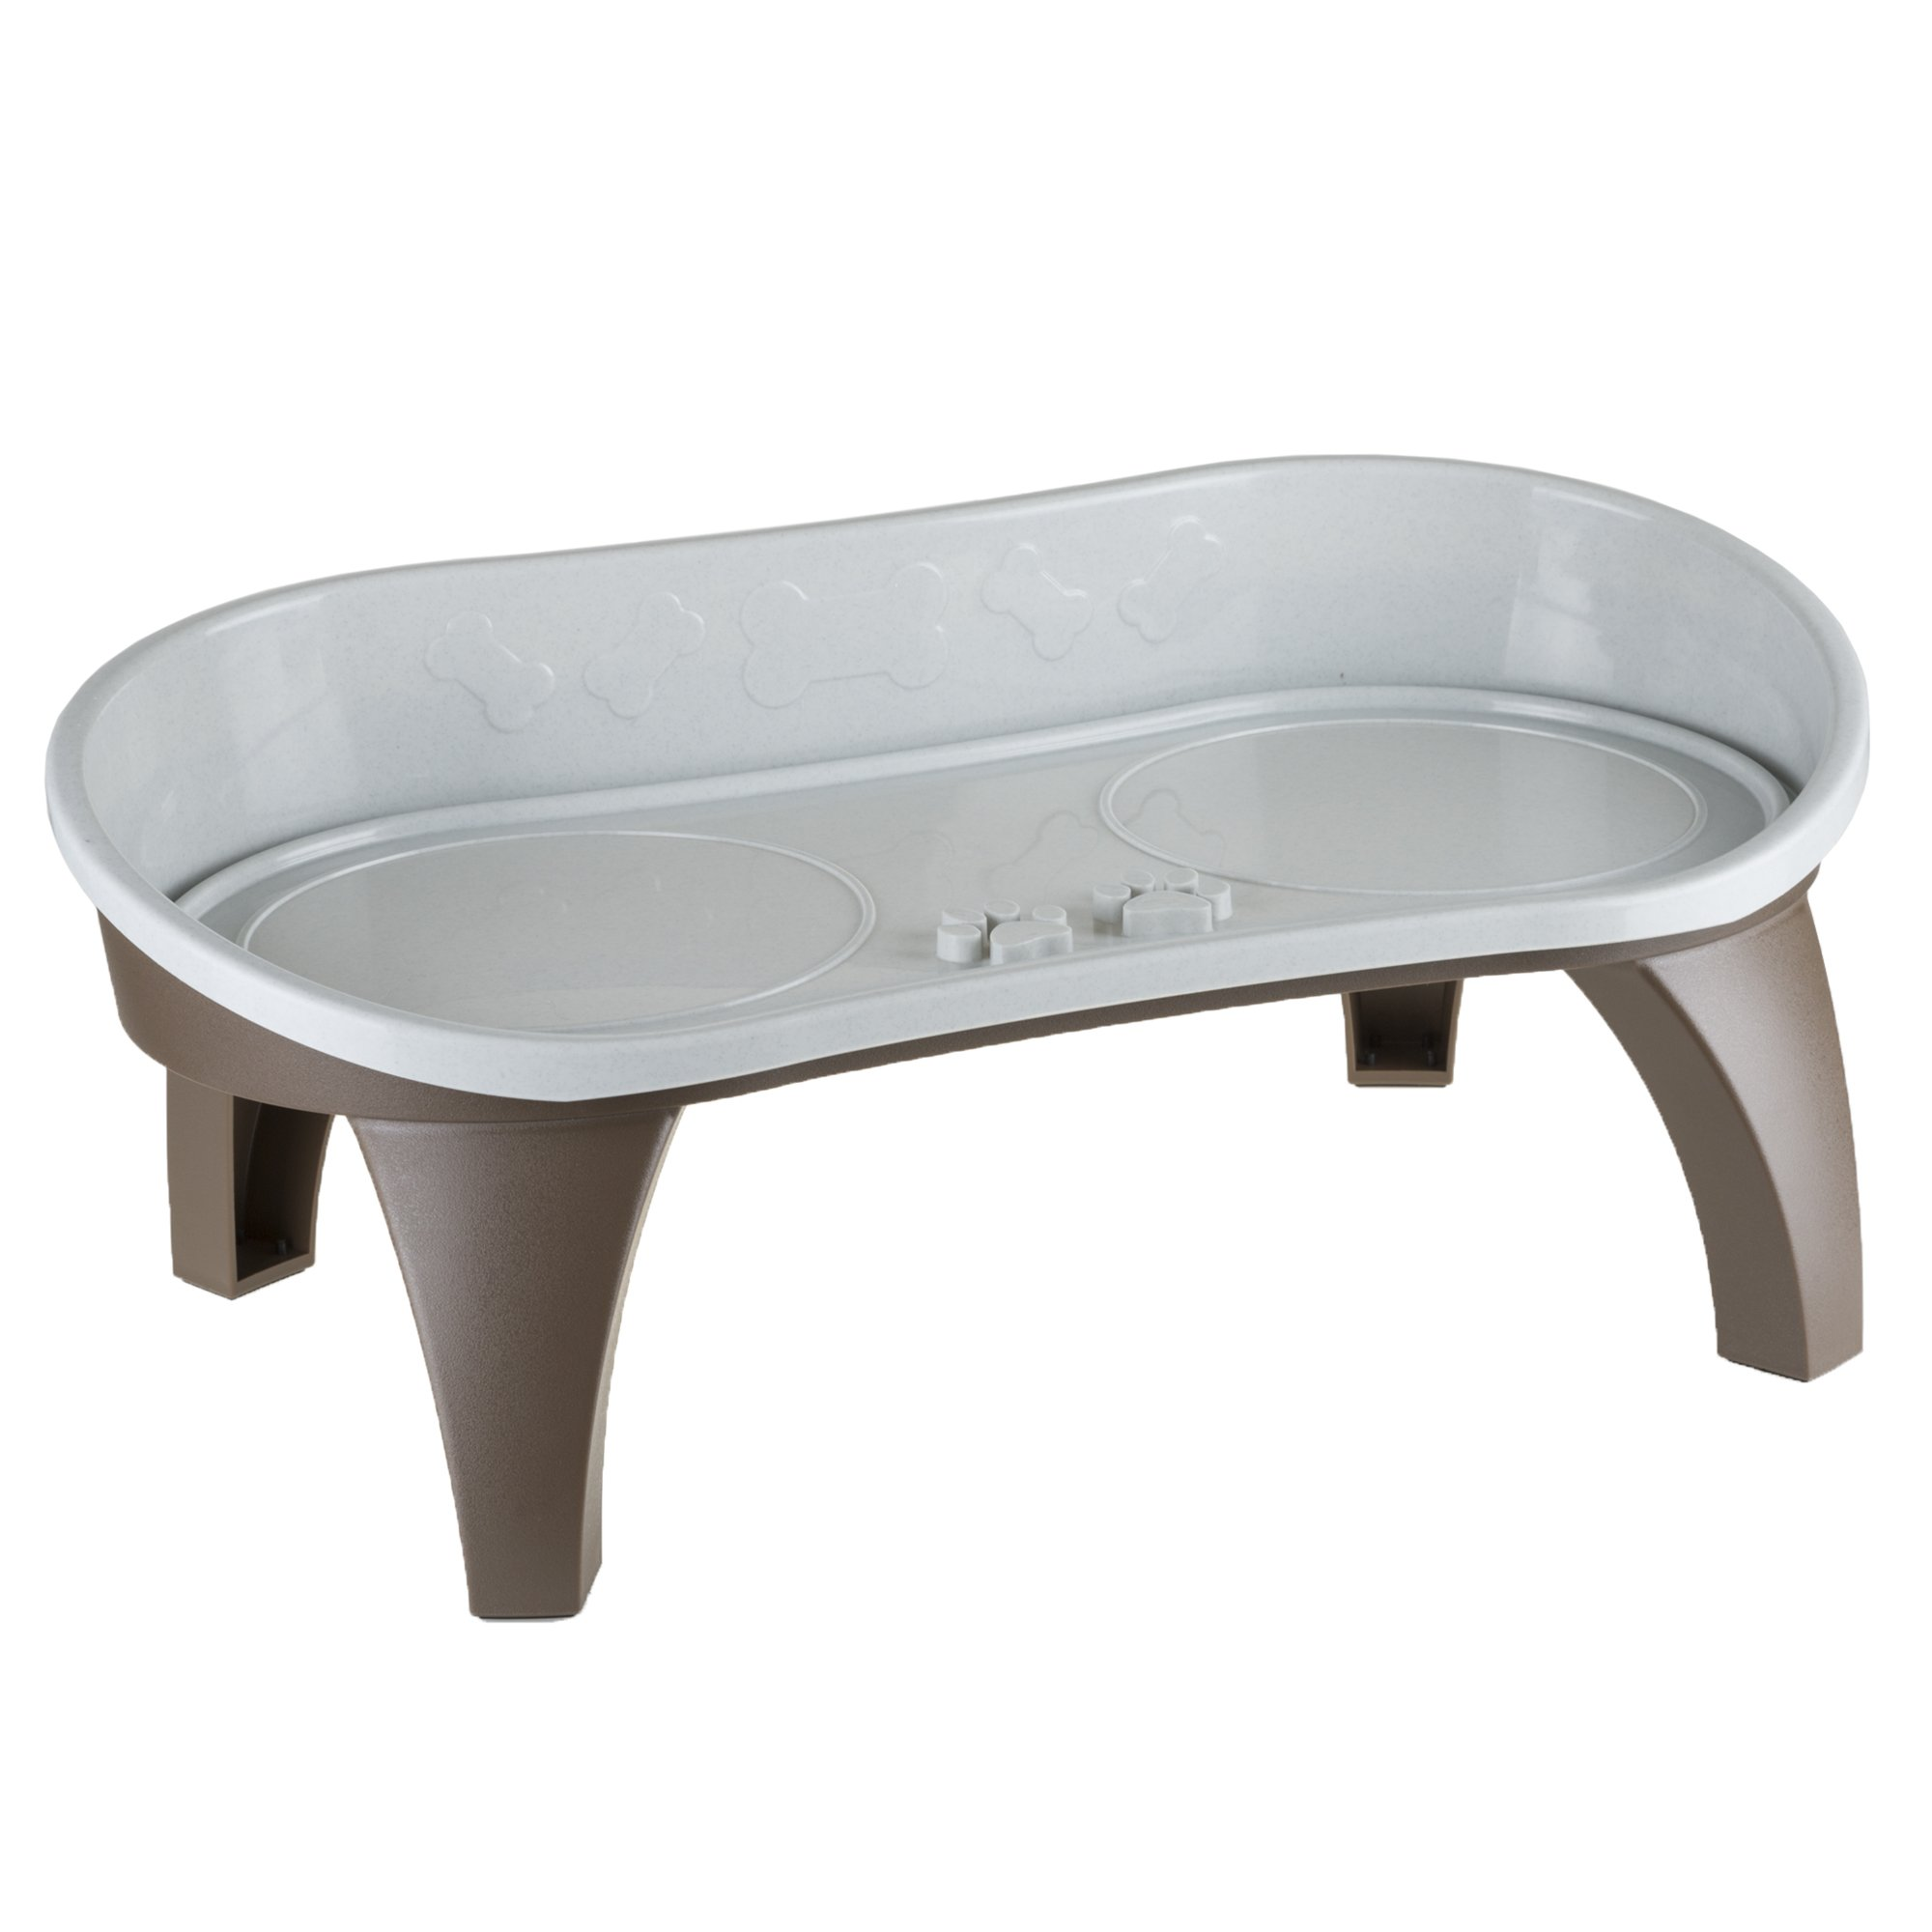 Elevated Pet Feeding Tray with splash guard and non-skid feet 21in x 11in x 8.5in by PETMAKER by PETMAKER